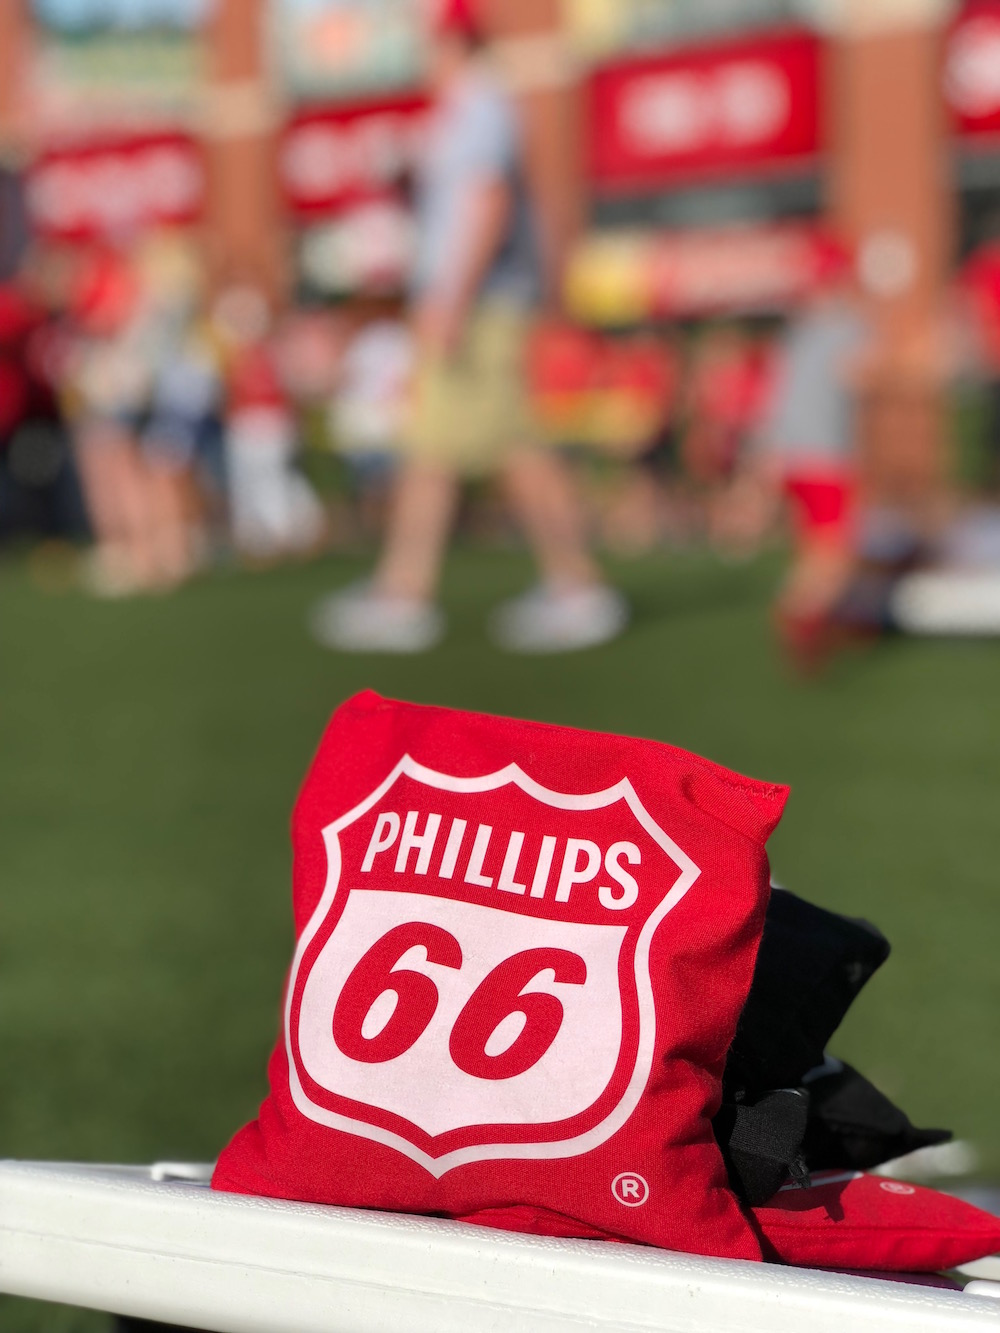 Phillips 66 Day At The Ballpark - Get discounted tickets to Cardinals games just by filling up your tank at Phillips 66! #partner